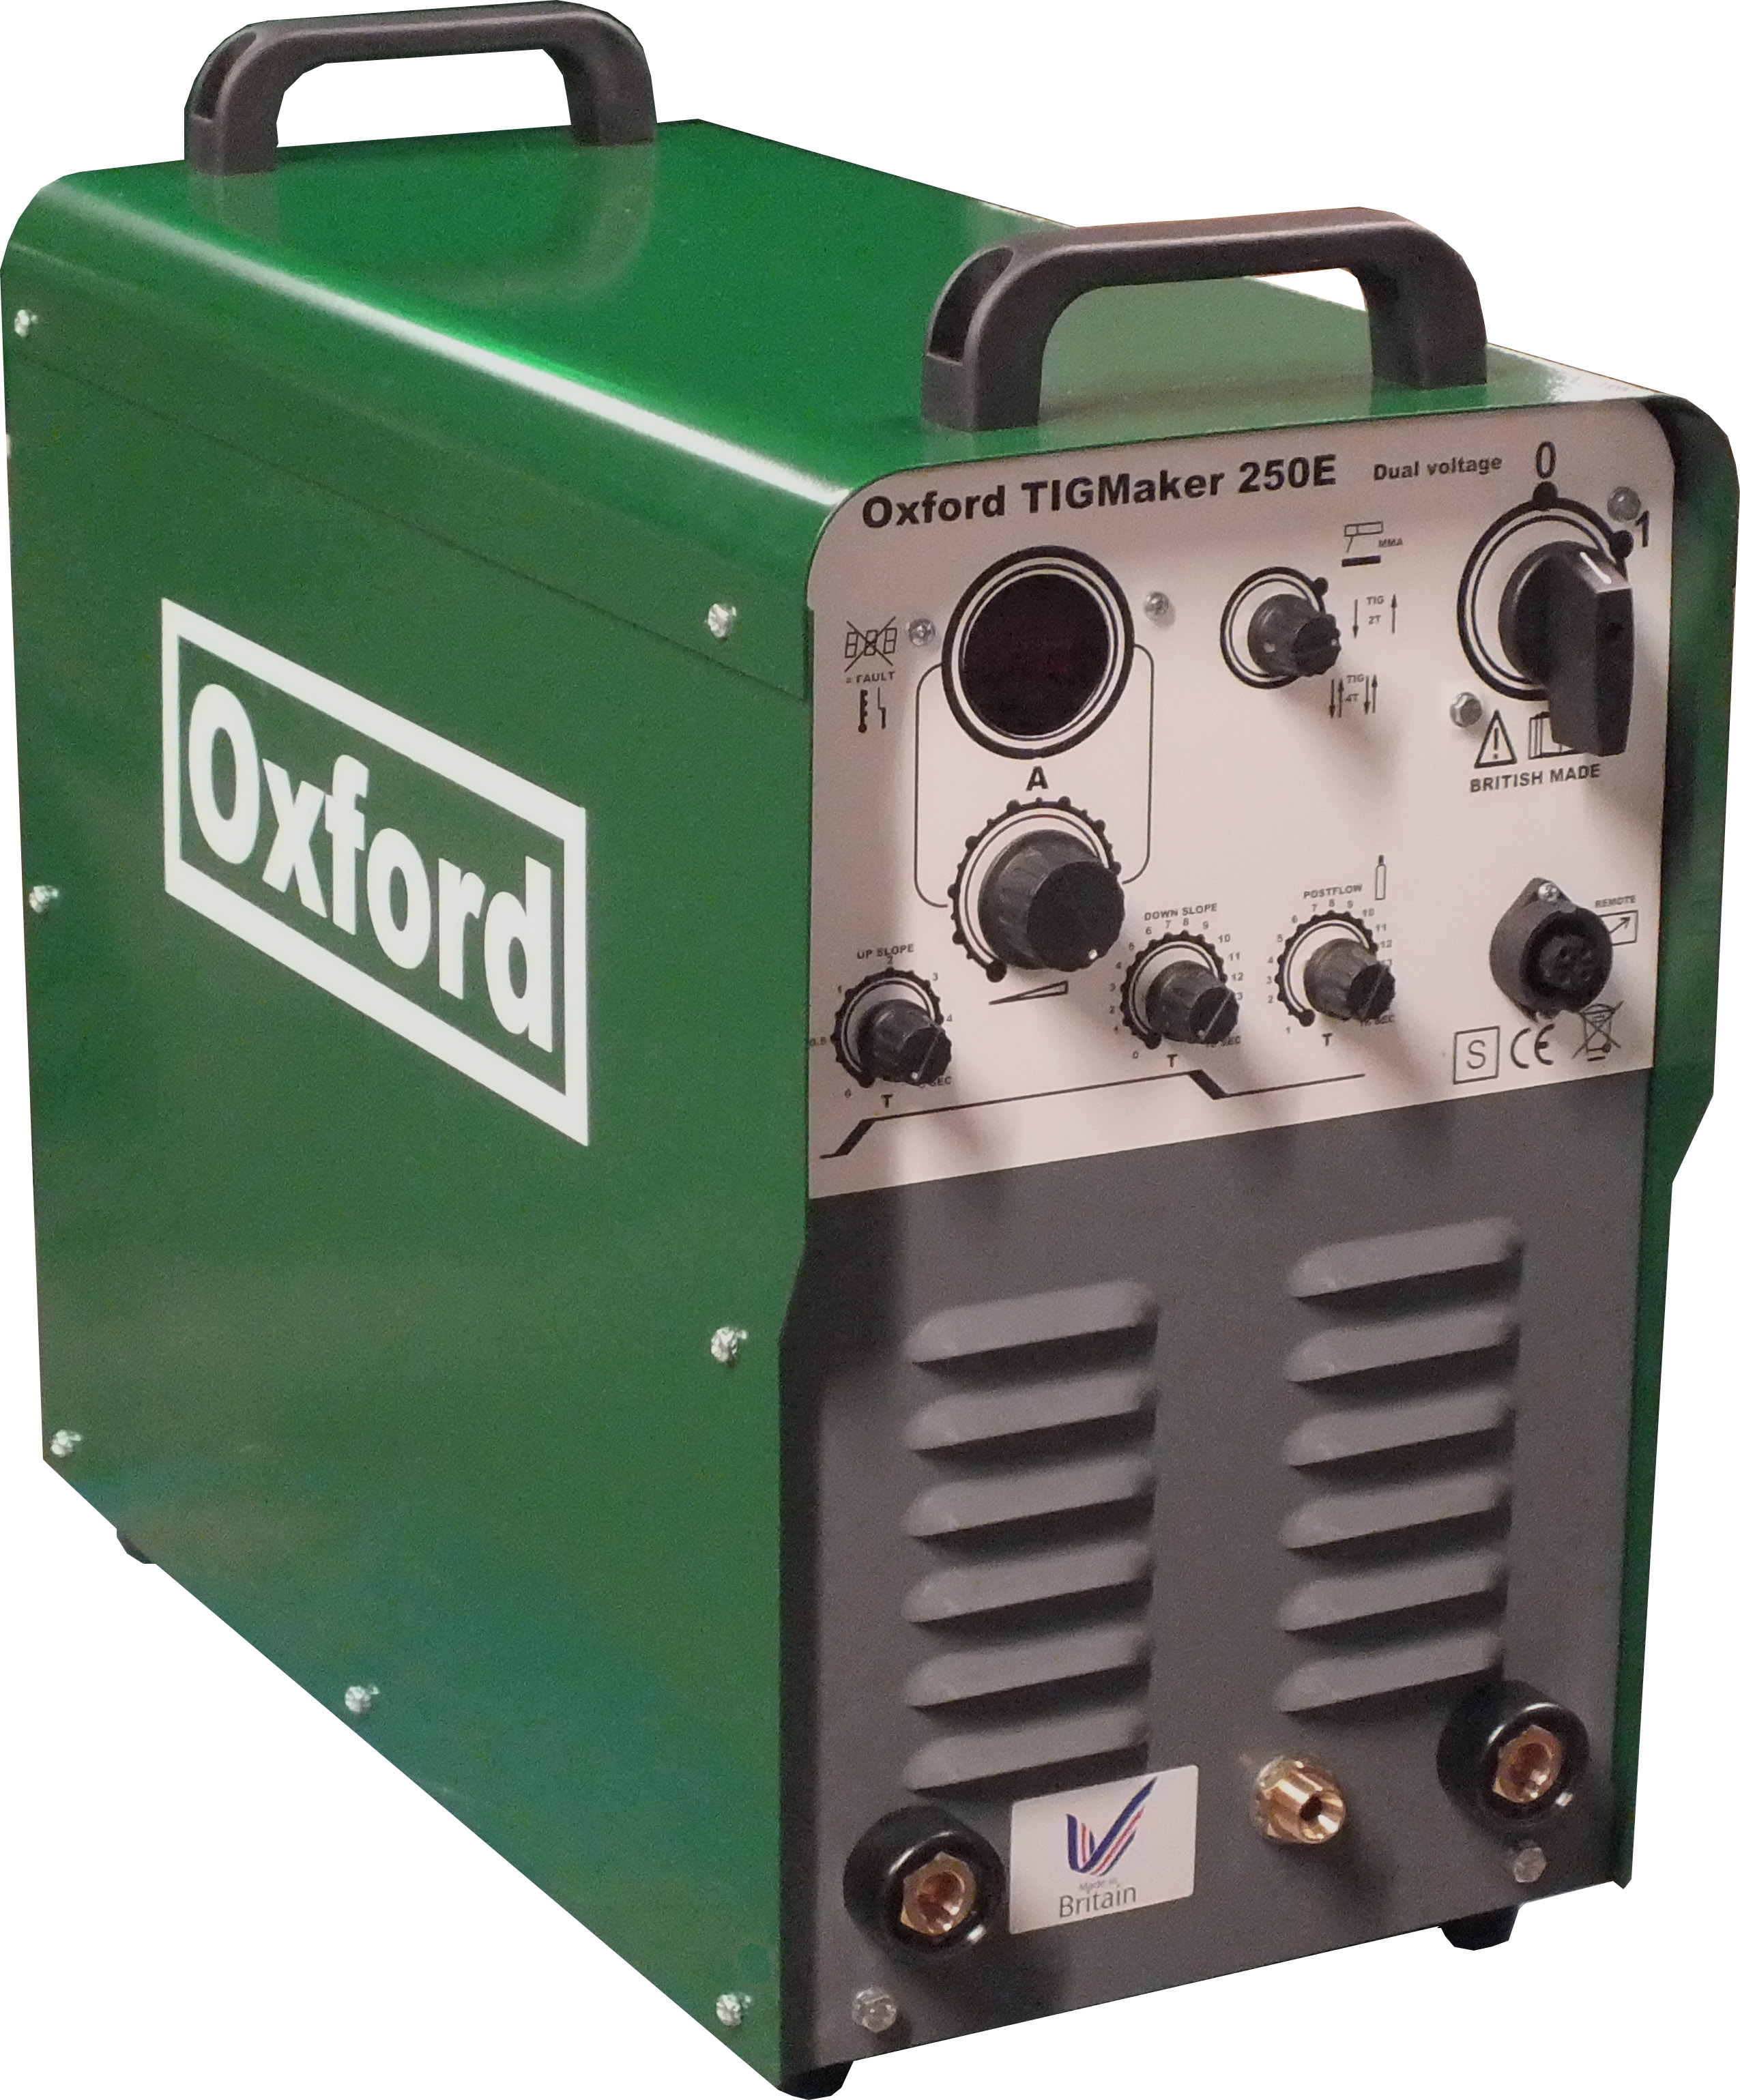 Oxford  TIGMaker 200E dual voltage 110/230V